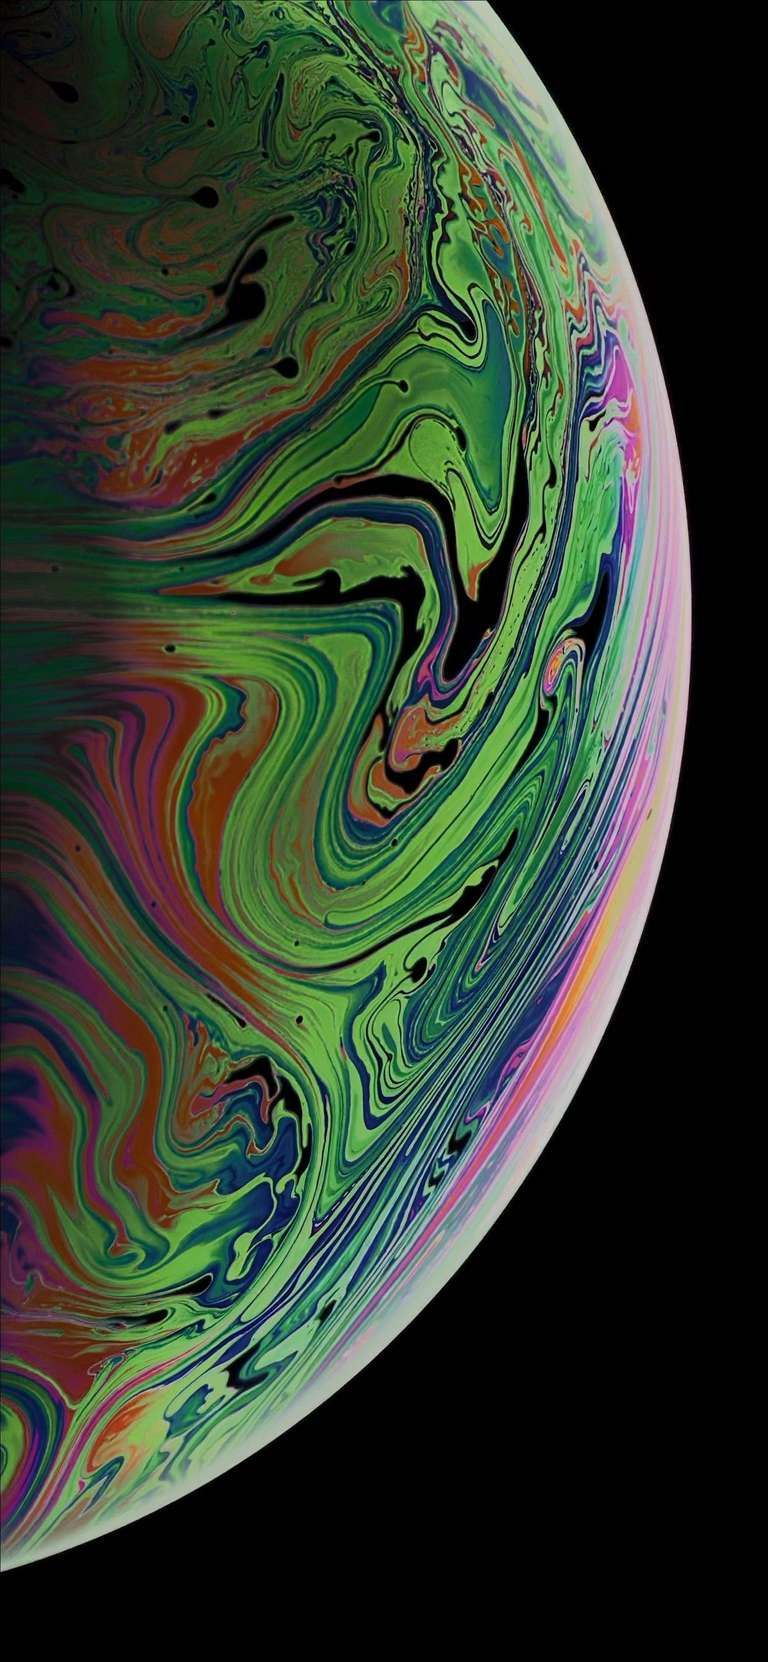 wallpaper iphone designer in 2020 Iphone wallpaper earth